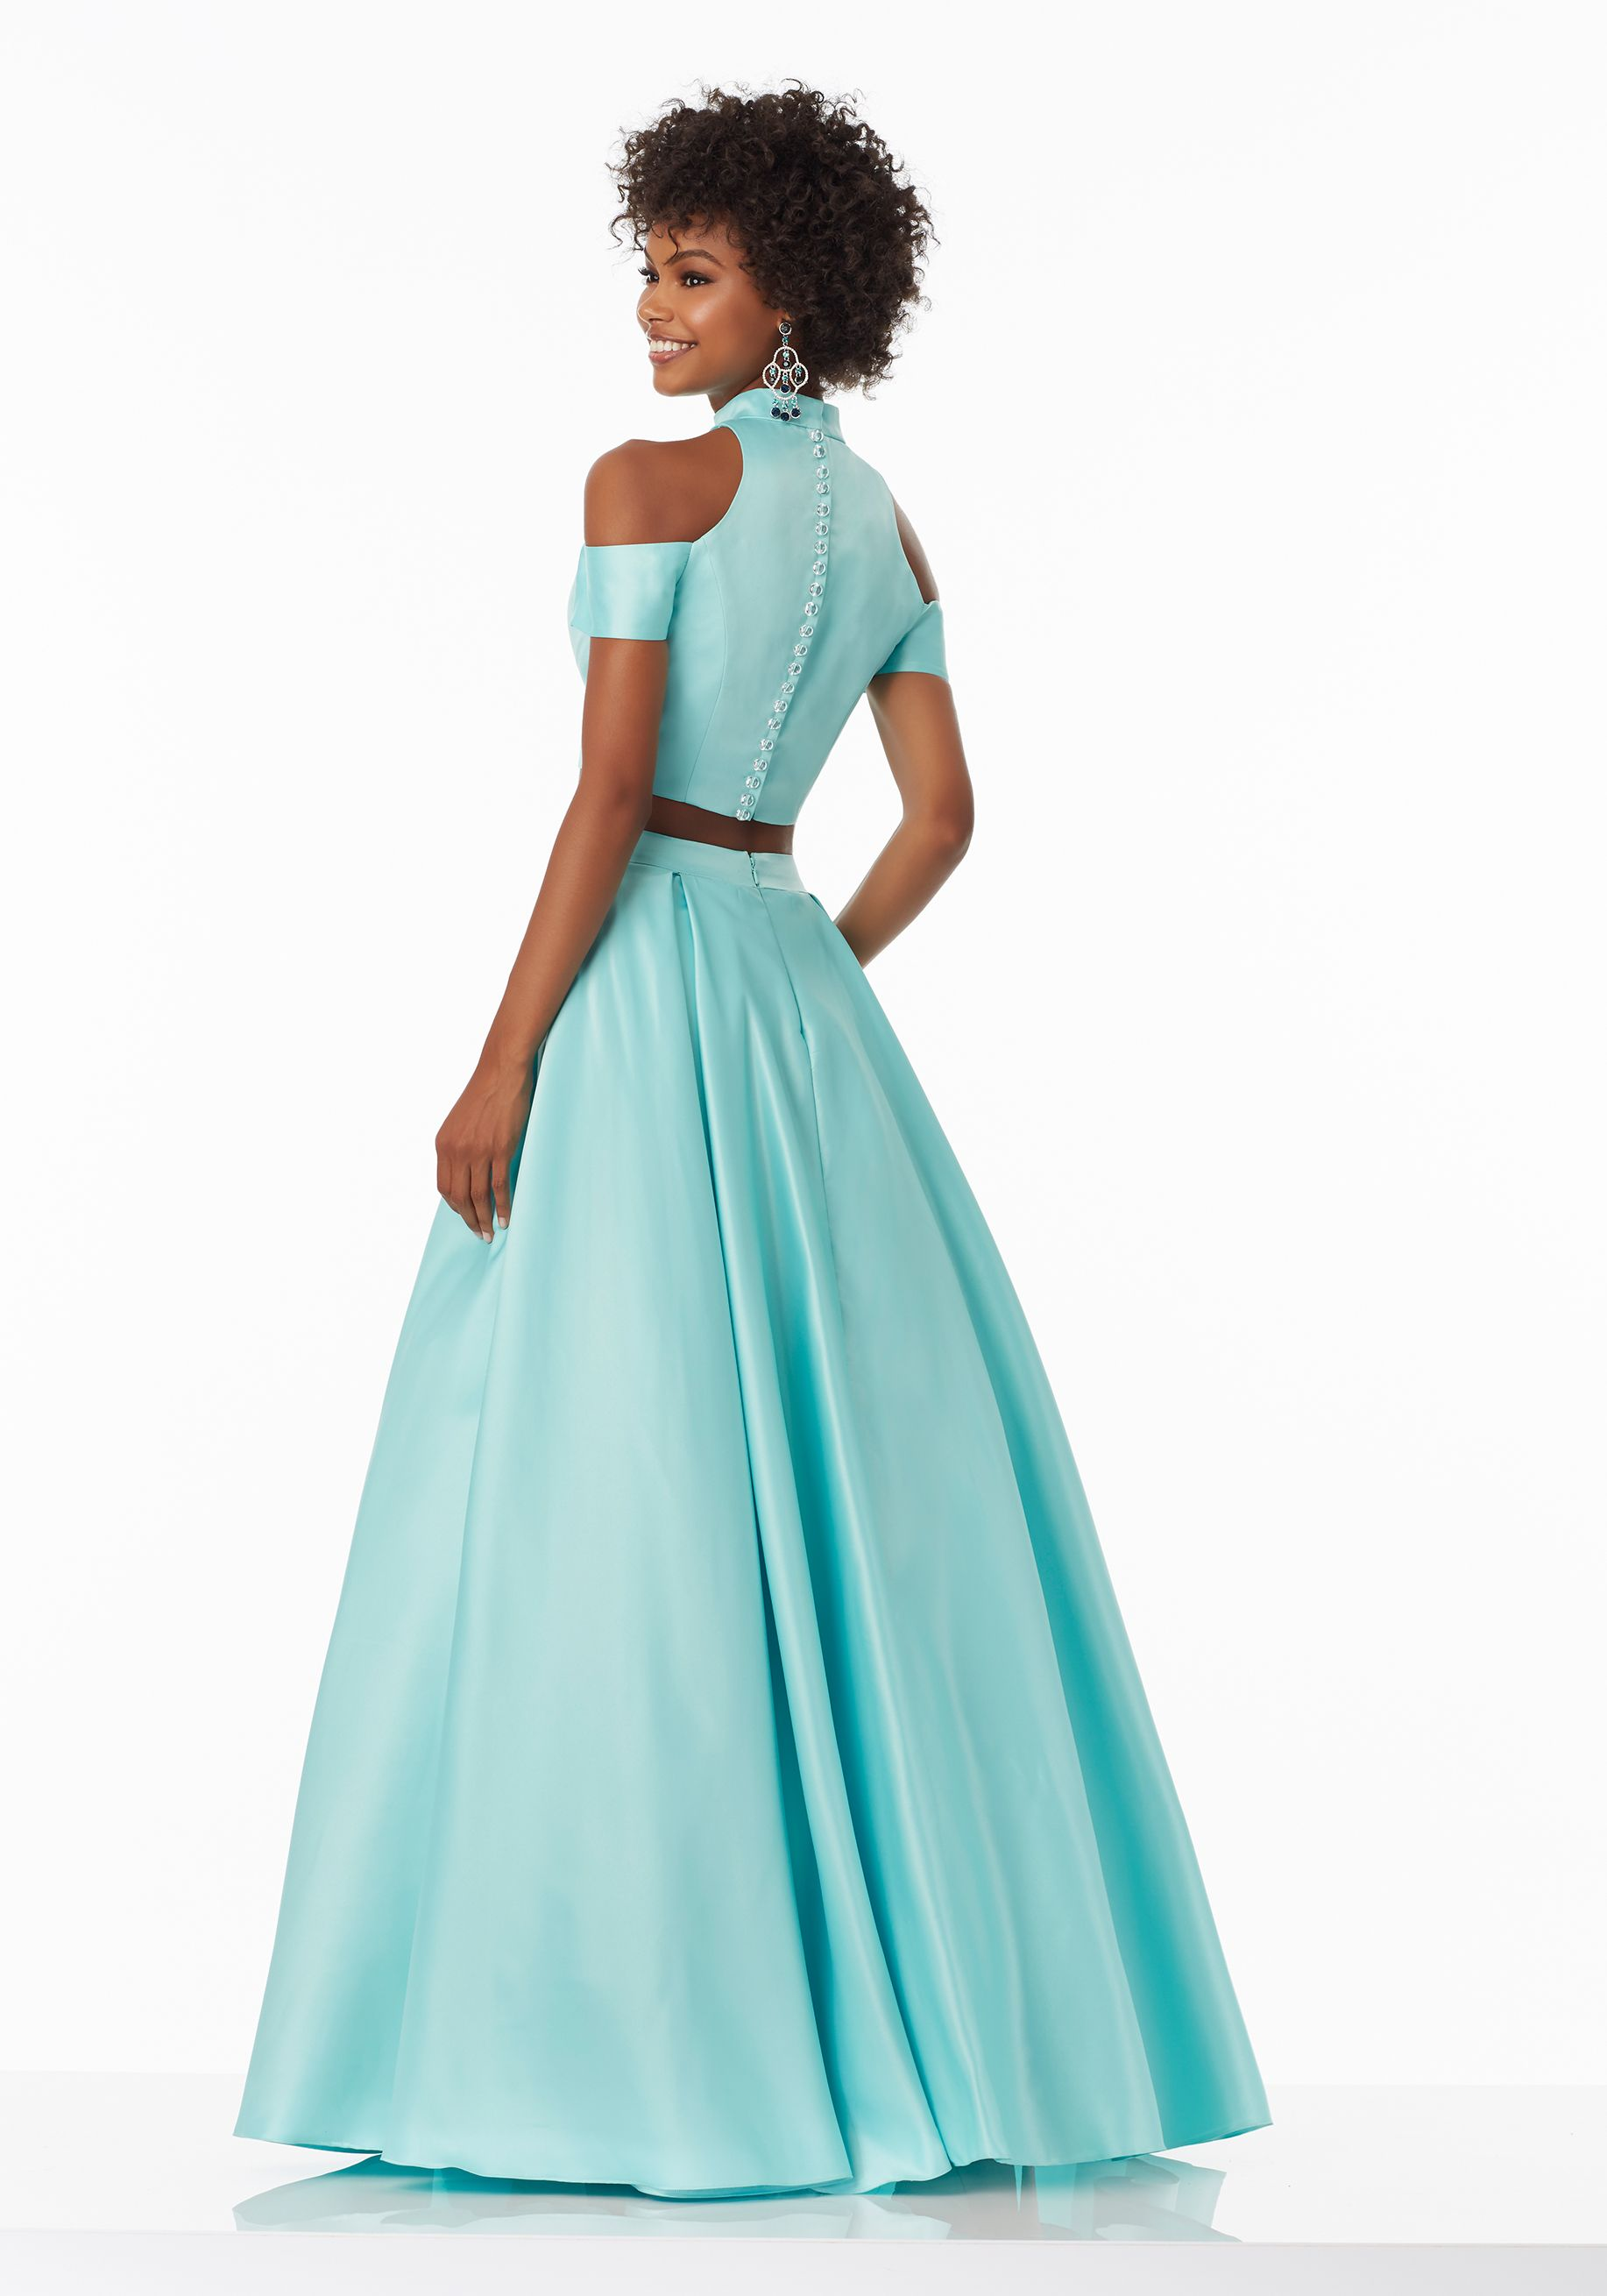 Prom Dresses By Morilee Designed By Madeline Gardner Two Piece Satin Prom Dress With Exposed Shoulders An Beautiful Prom Dresses Prom Dresses Satin Prom Dress [ 2620 x 1834 Pixel ]